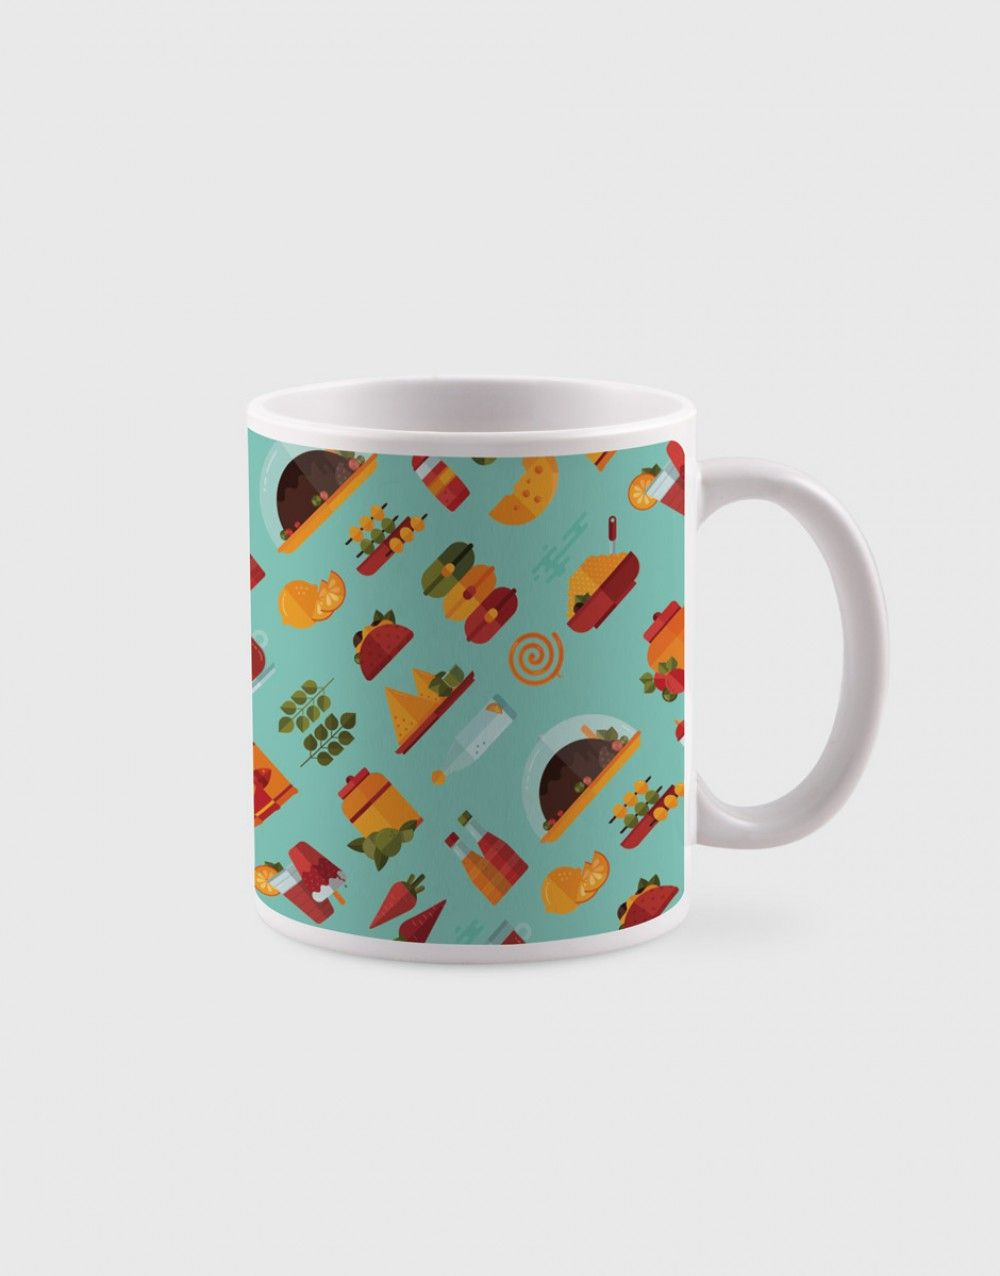 Feast Something - MUGS - PRODUCTS